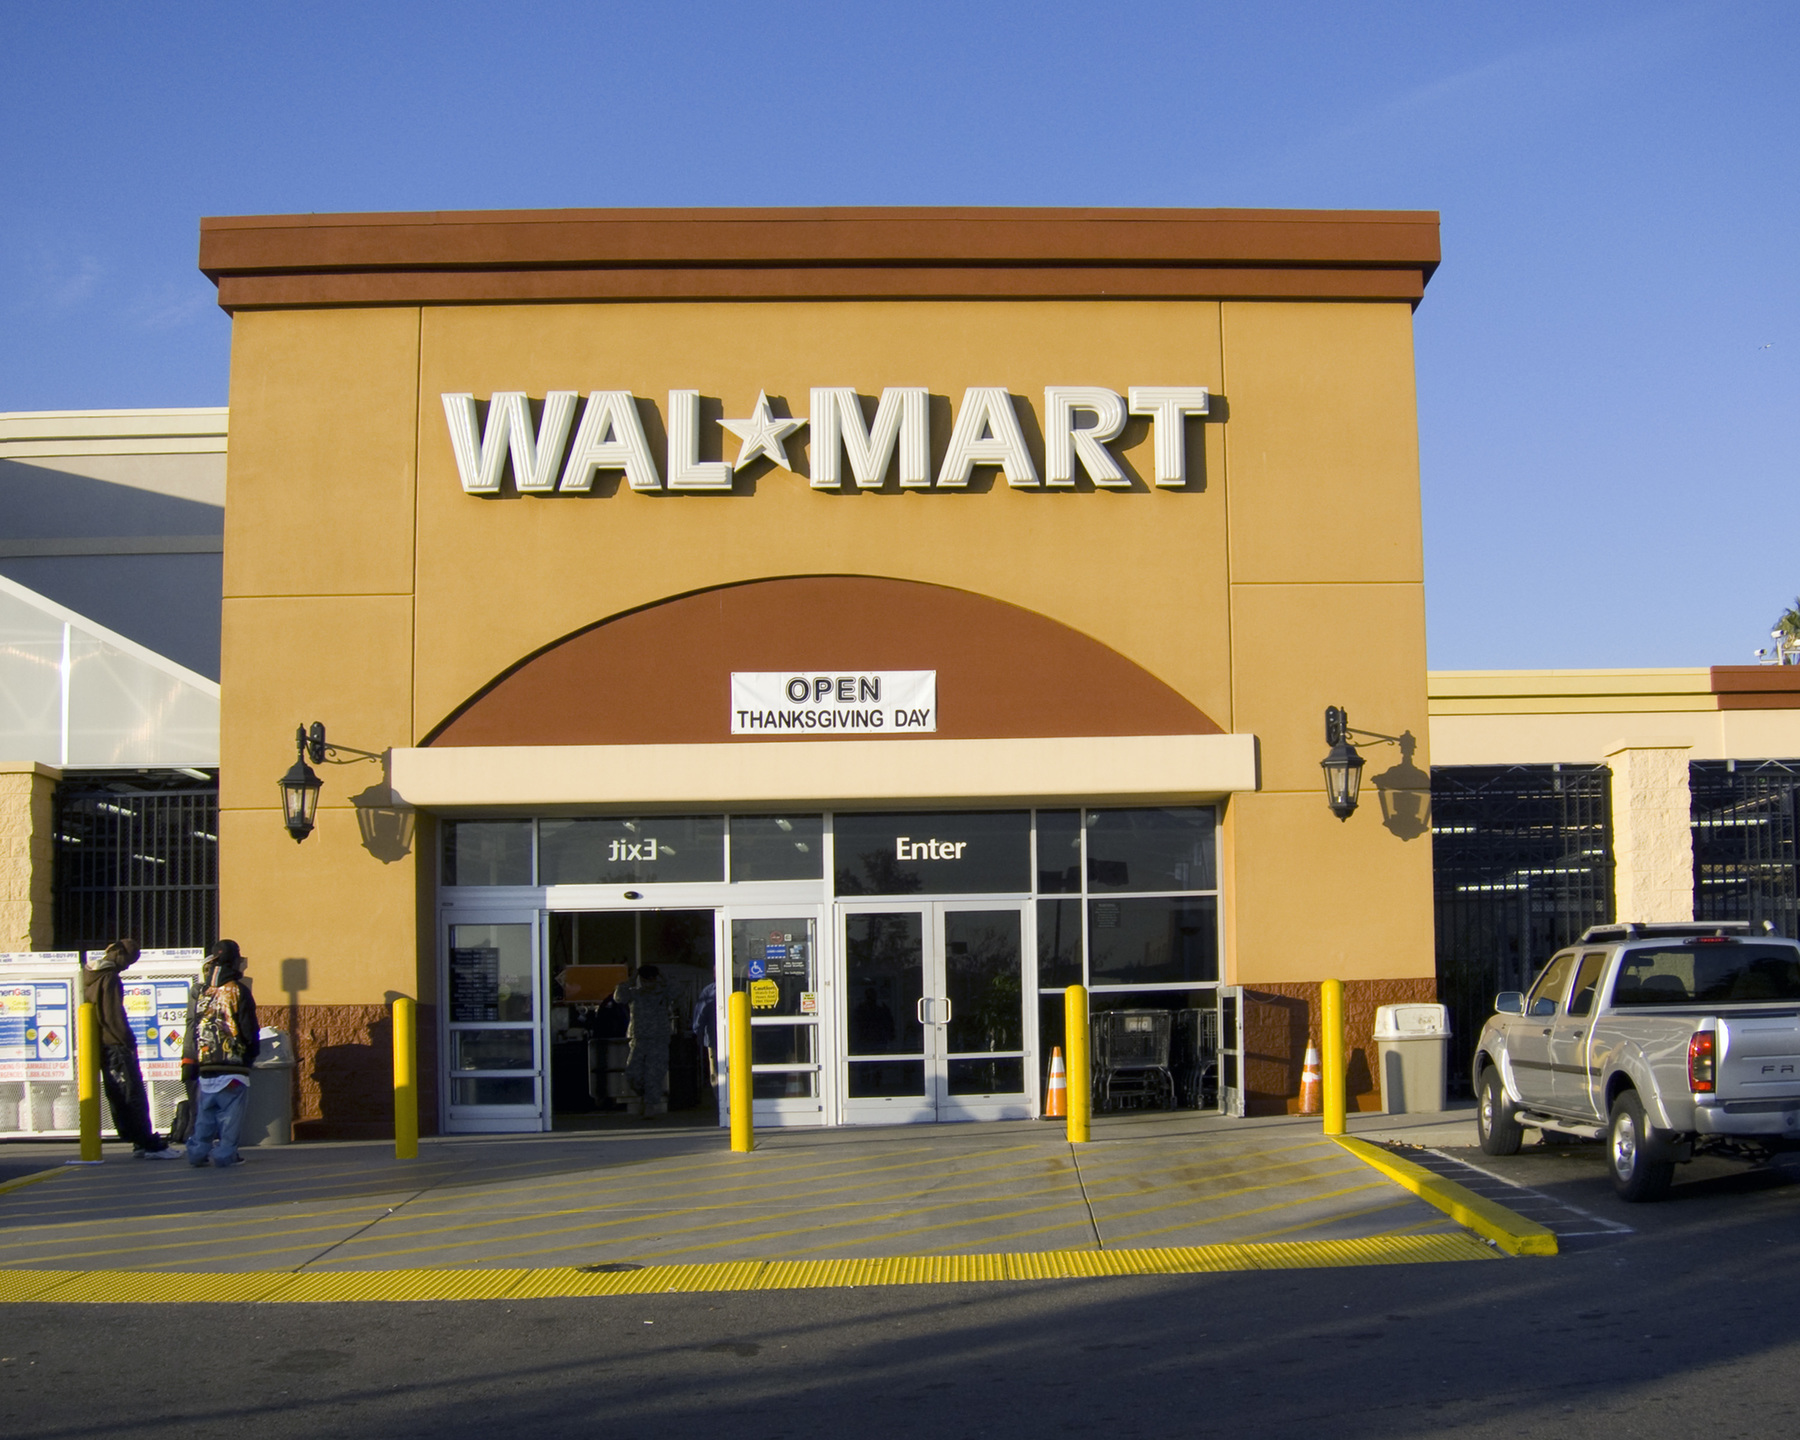 Walmart to shutdown stores on Thanksgiving and stop Black Friday sales